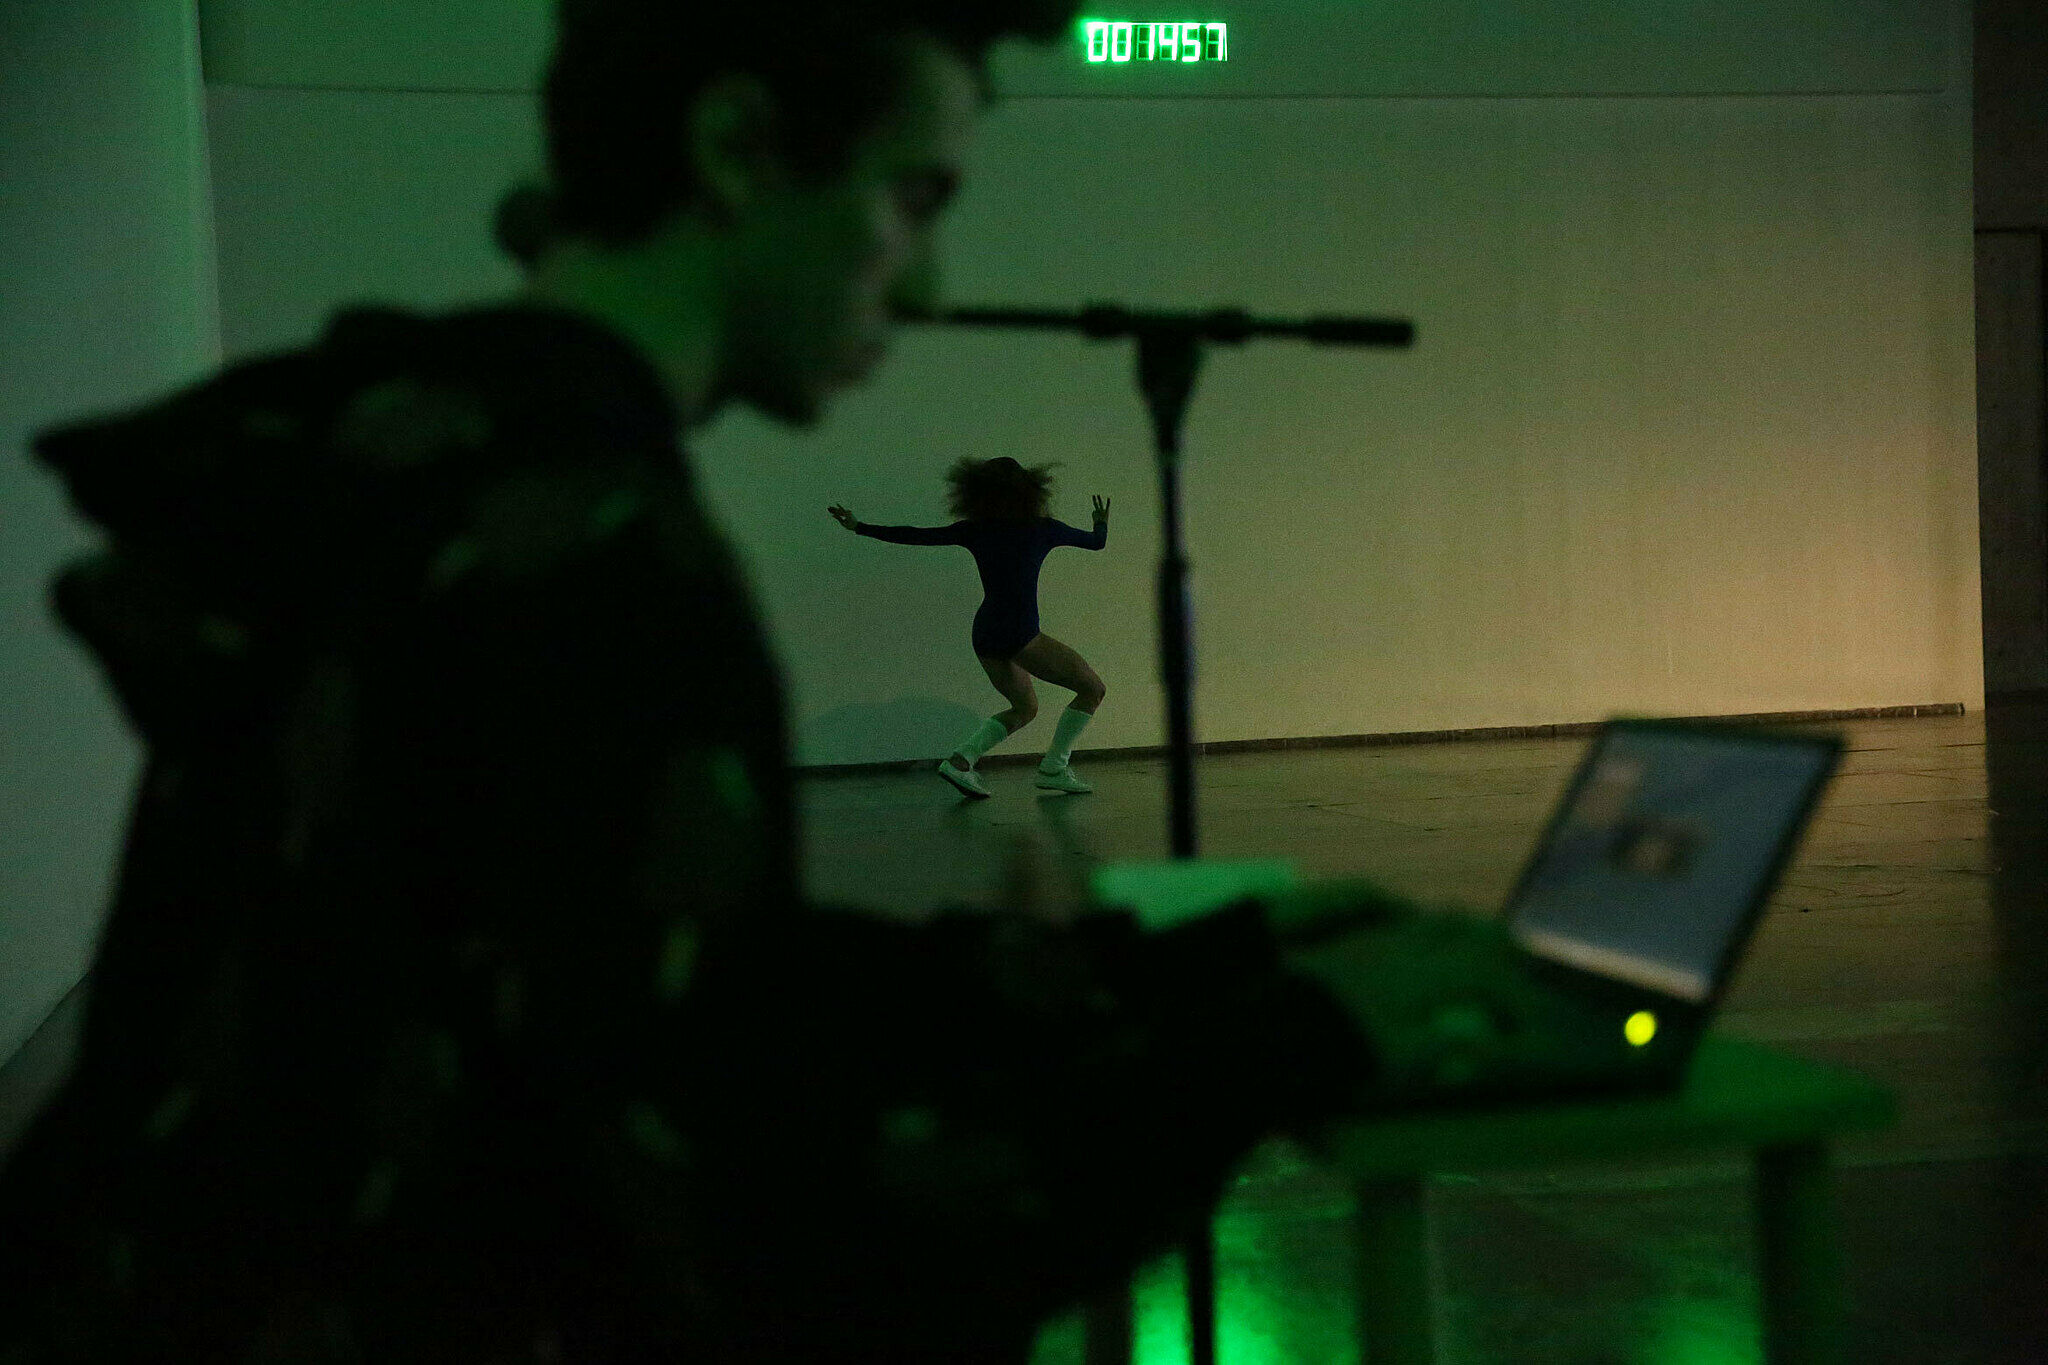 A man on a laptop sits in the foreground while a woman dances in the background.